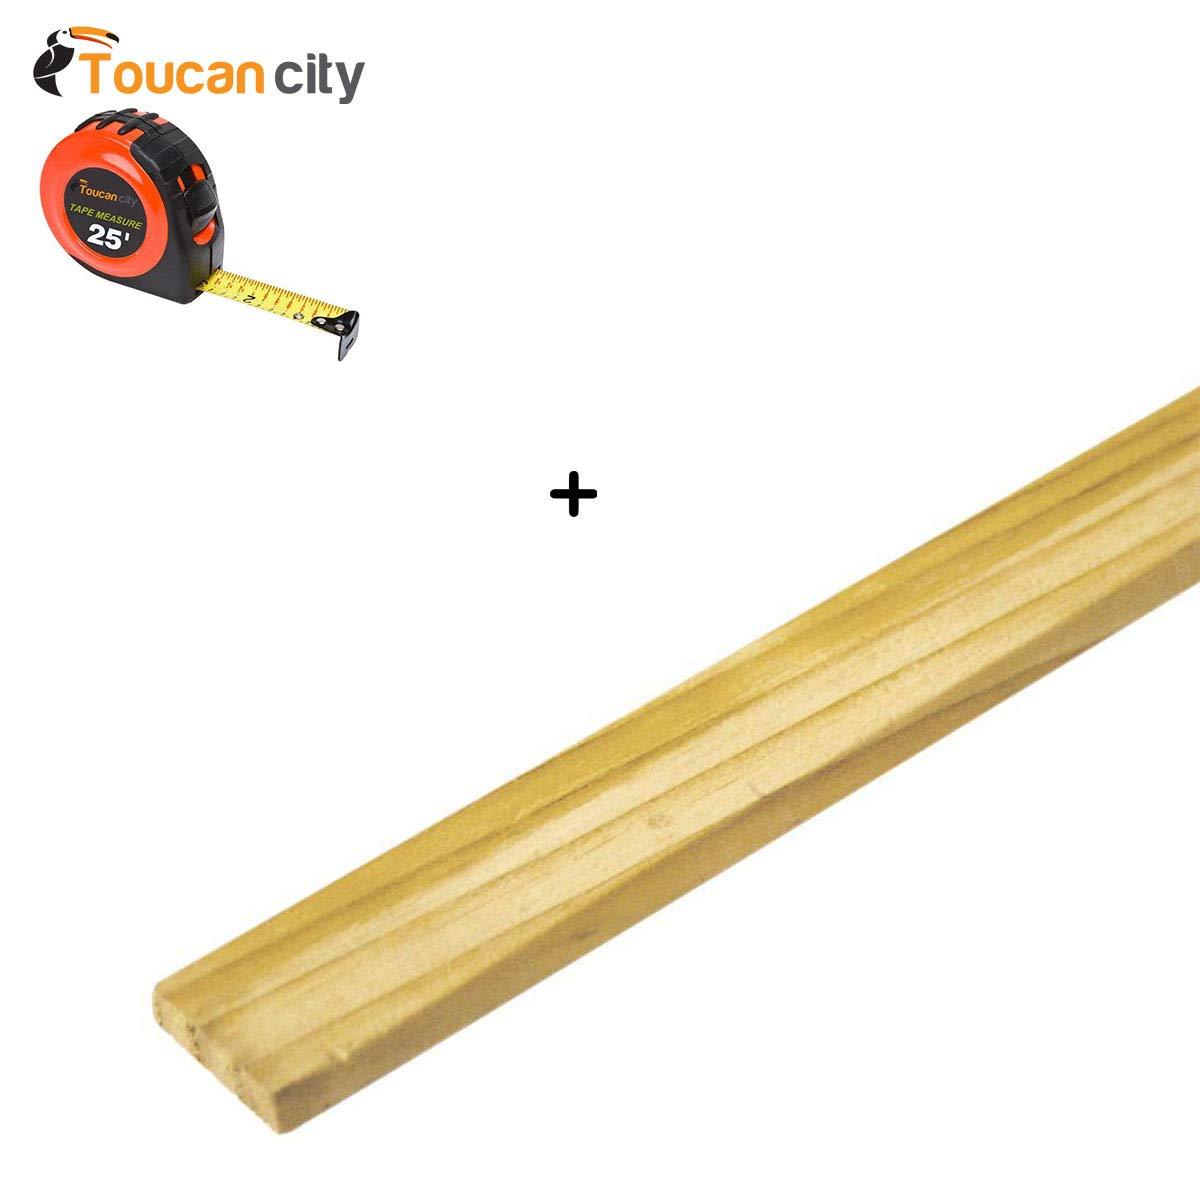 Toucan City Tape Measure and 5/16 in. x 1.5 in. x 4 ft. Wood Lath (50-Pack) 234629